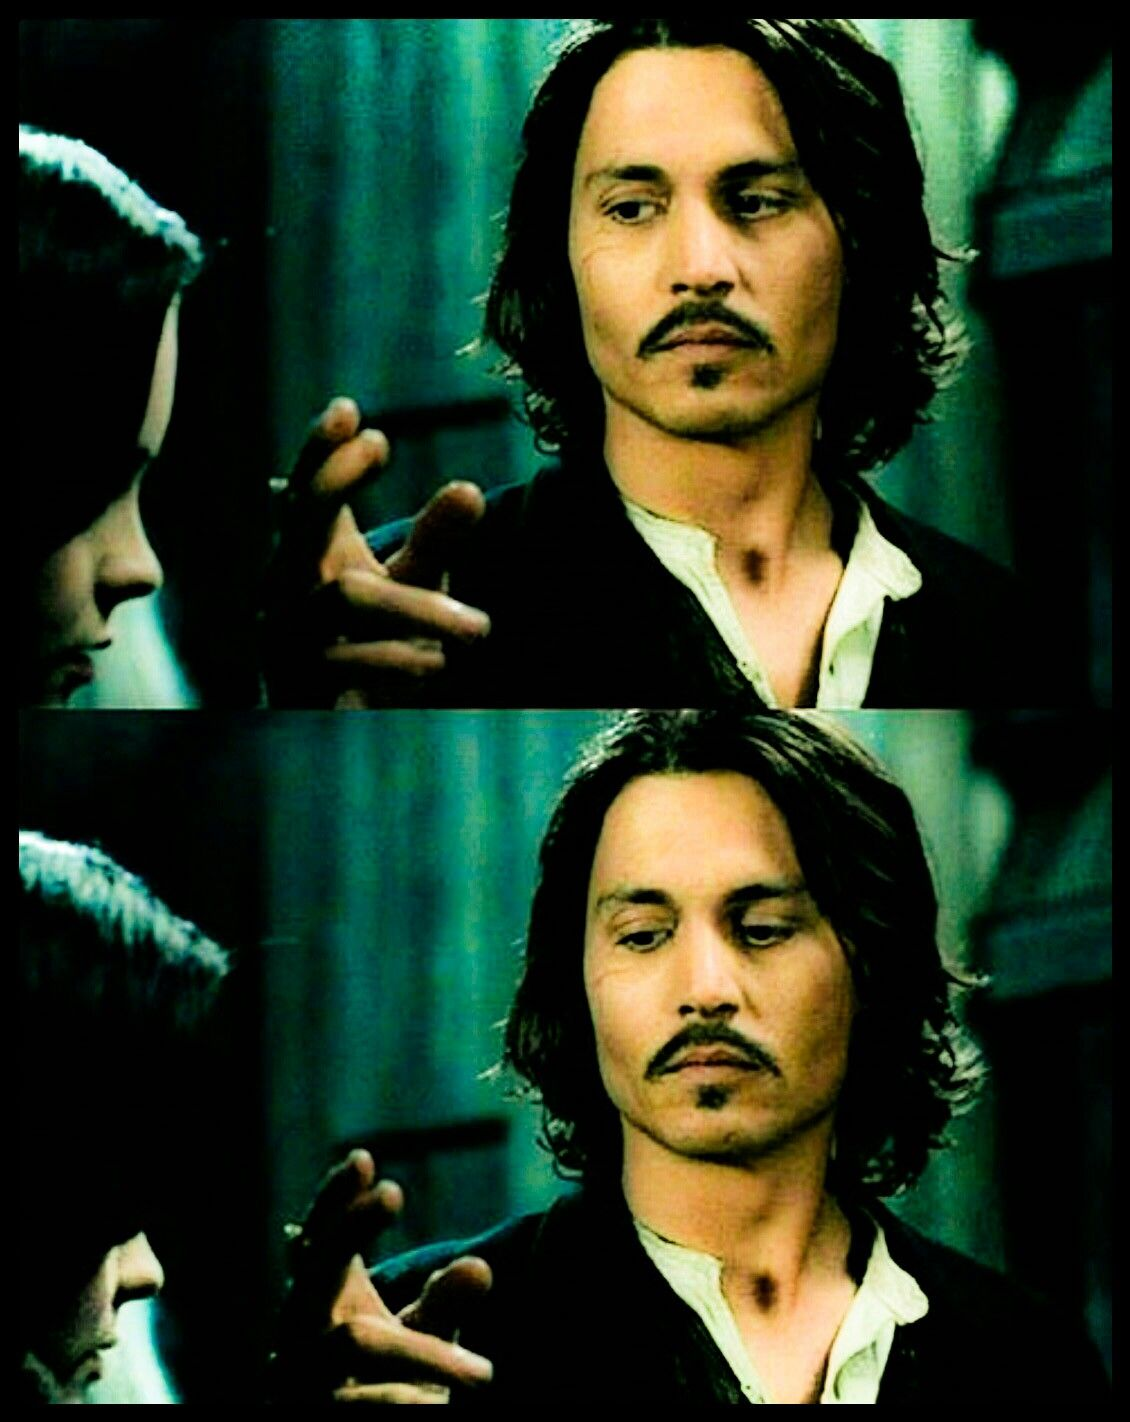 Johnny Depp and Christina Ricci I Give You Johnny Depp